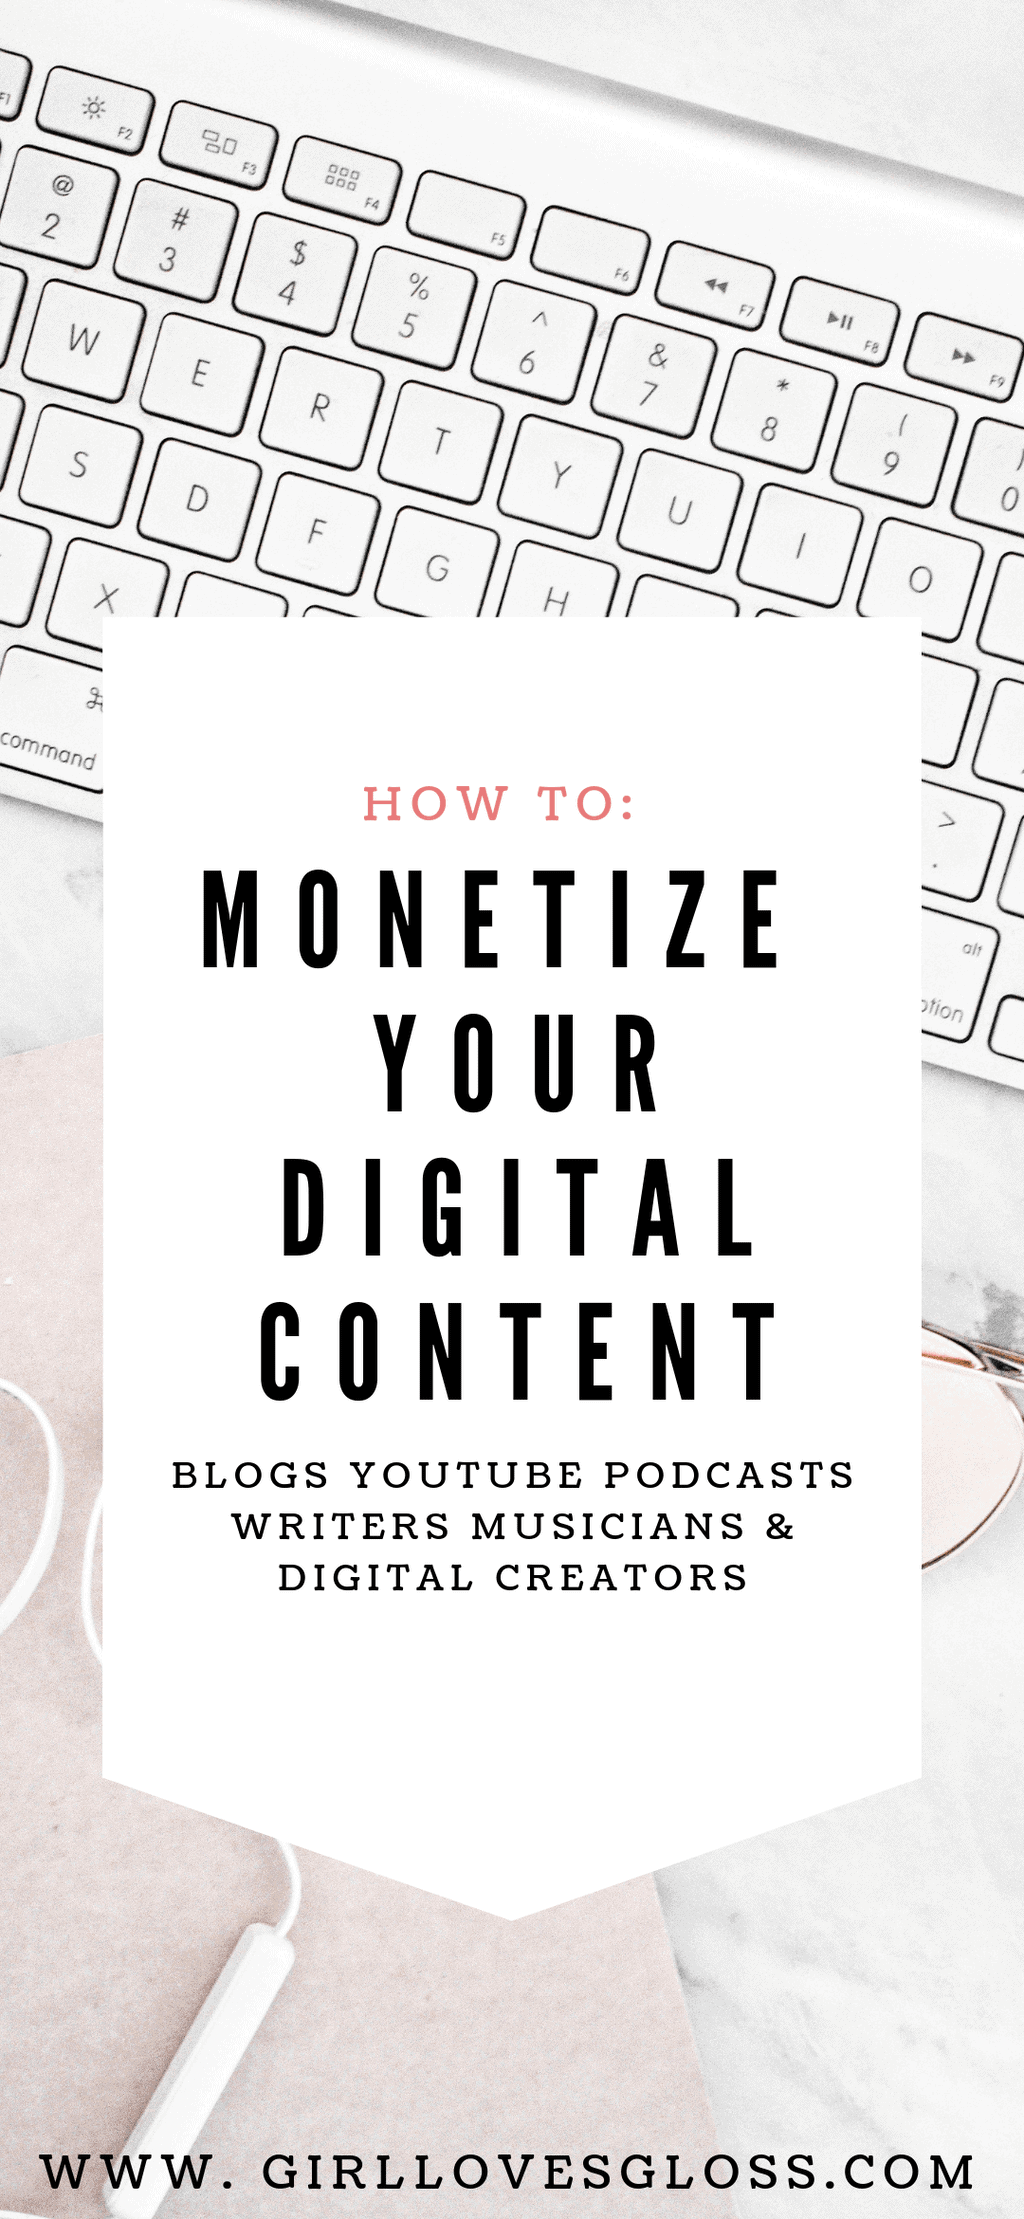 5 Ways to Monetize Your Content